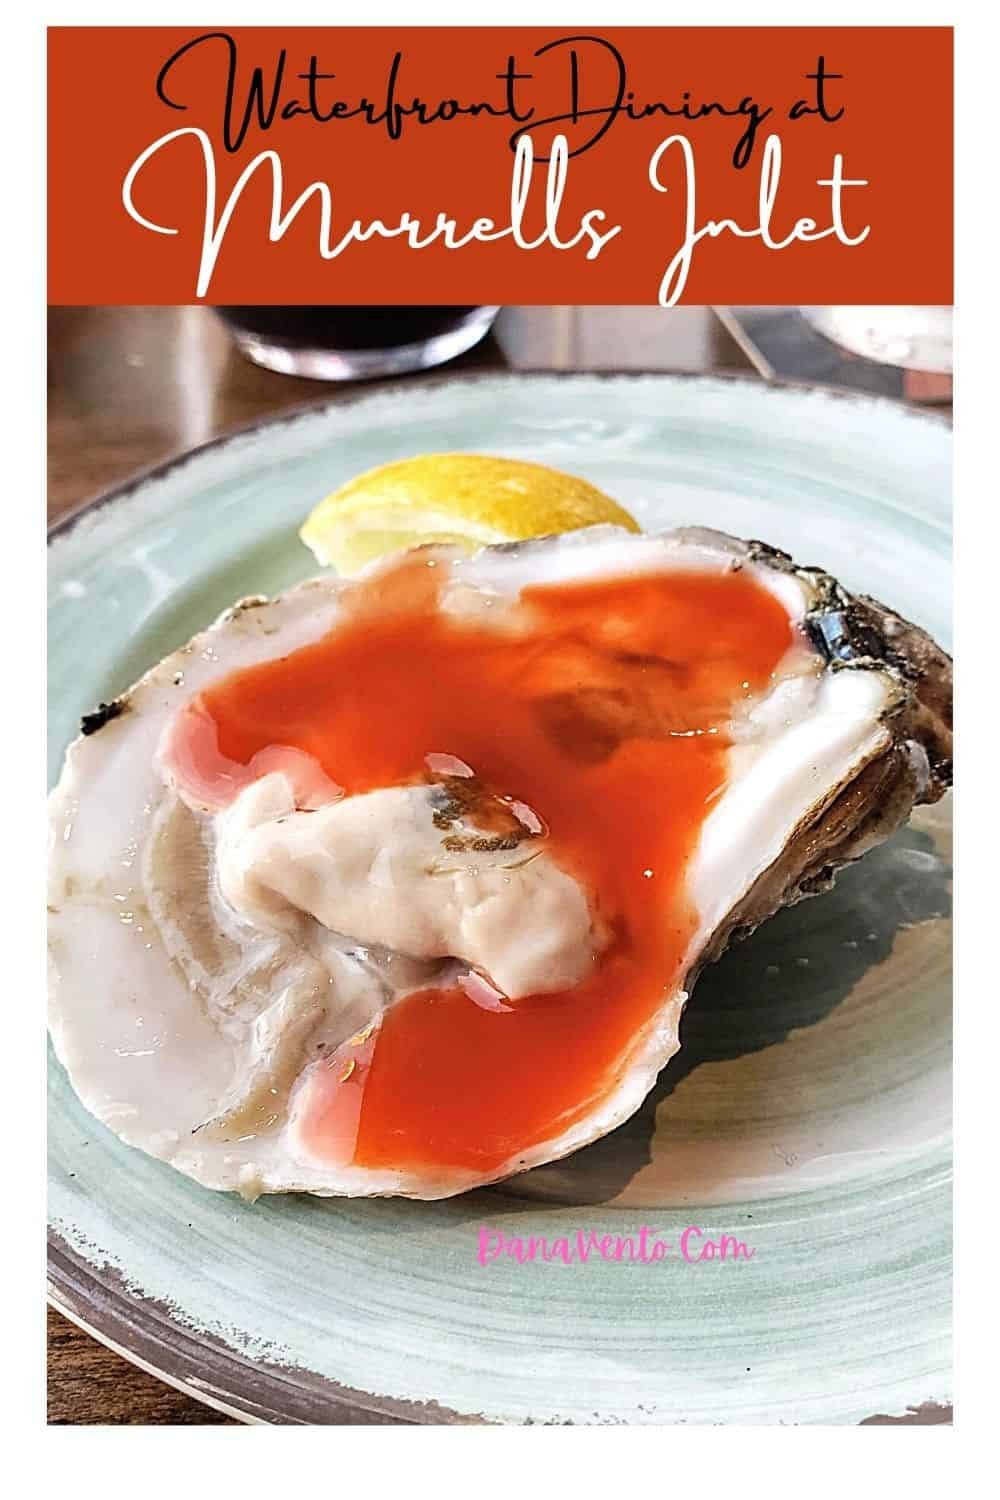 waterfront dining at Murrells Inlet oyster